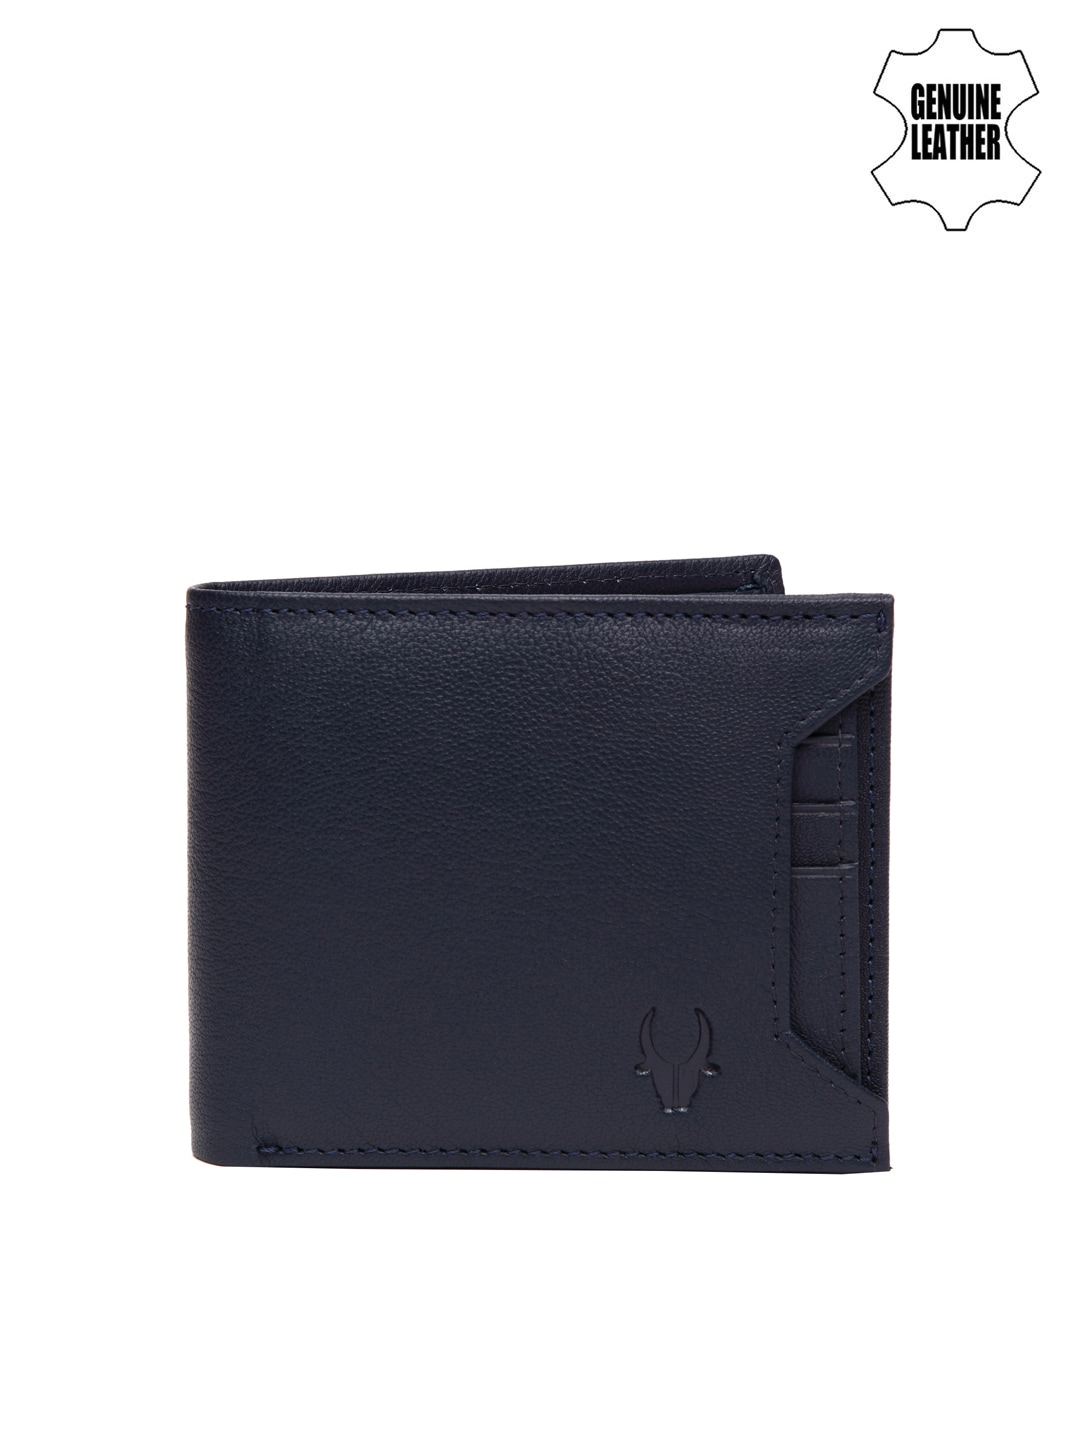 b9d6afd9b7 Mens Wallets - Buy Wallets for Men Online at Best Price